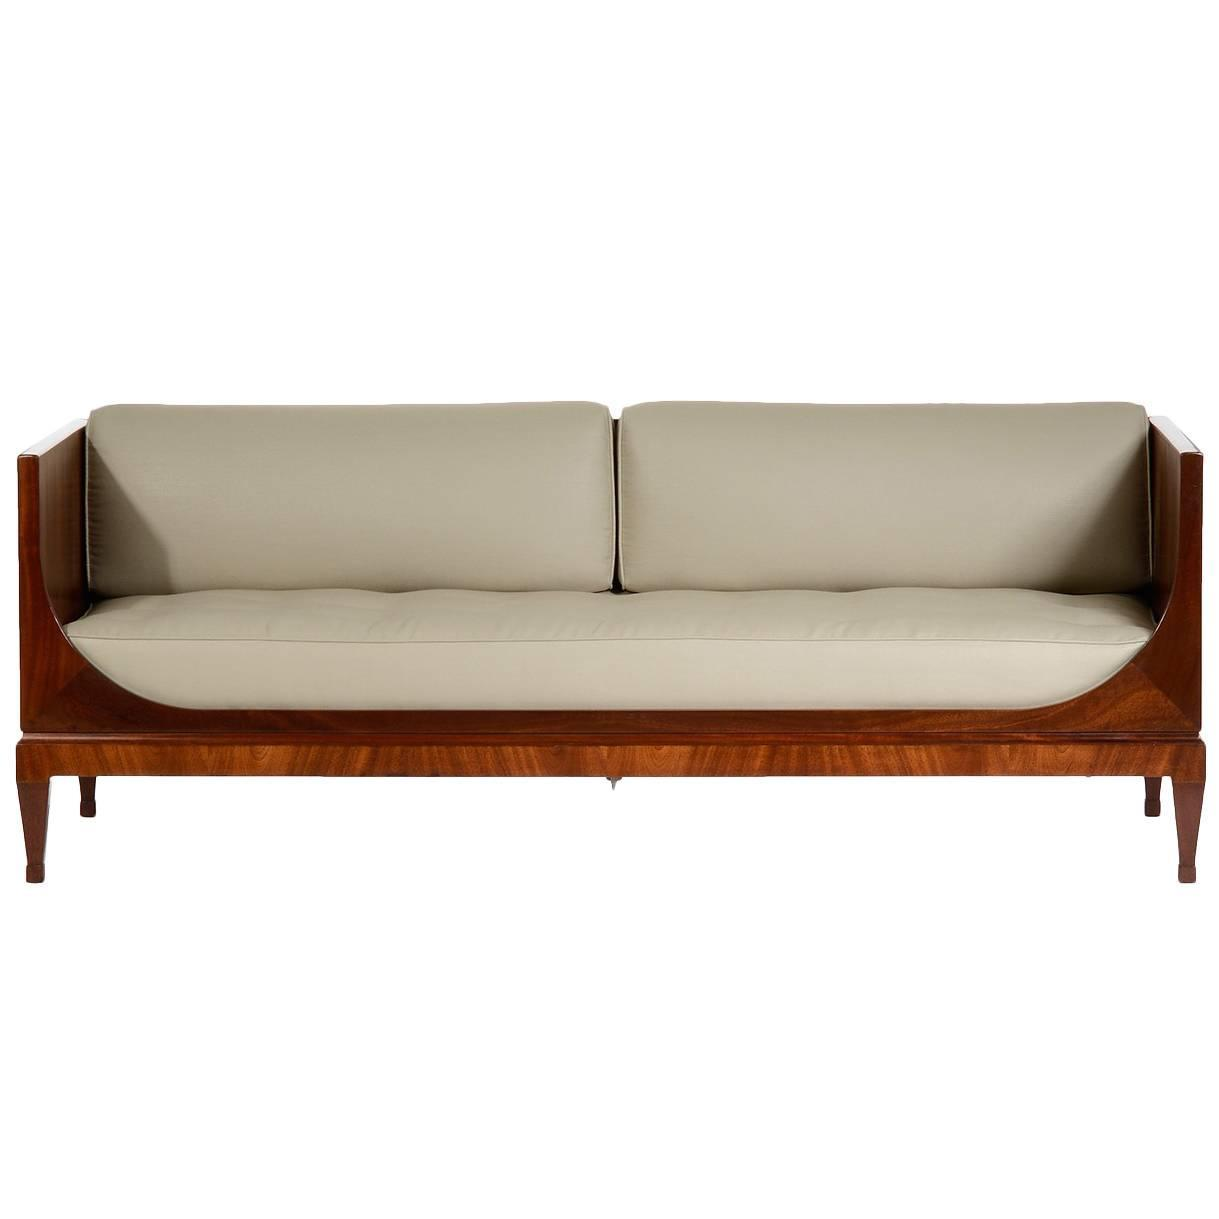 Circa sofa circa modular configurable lounge system for Ashley circa taupe sofa chaise